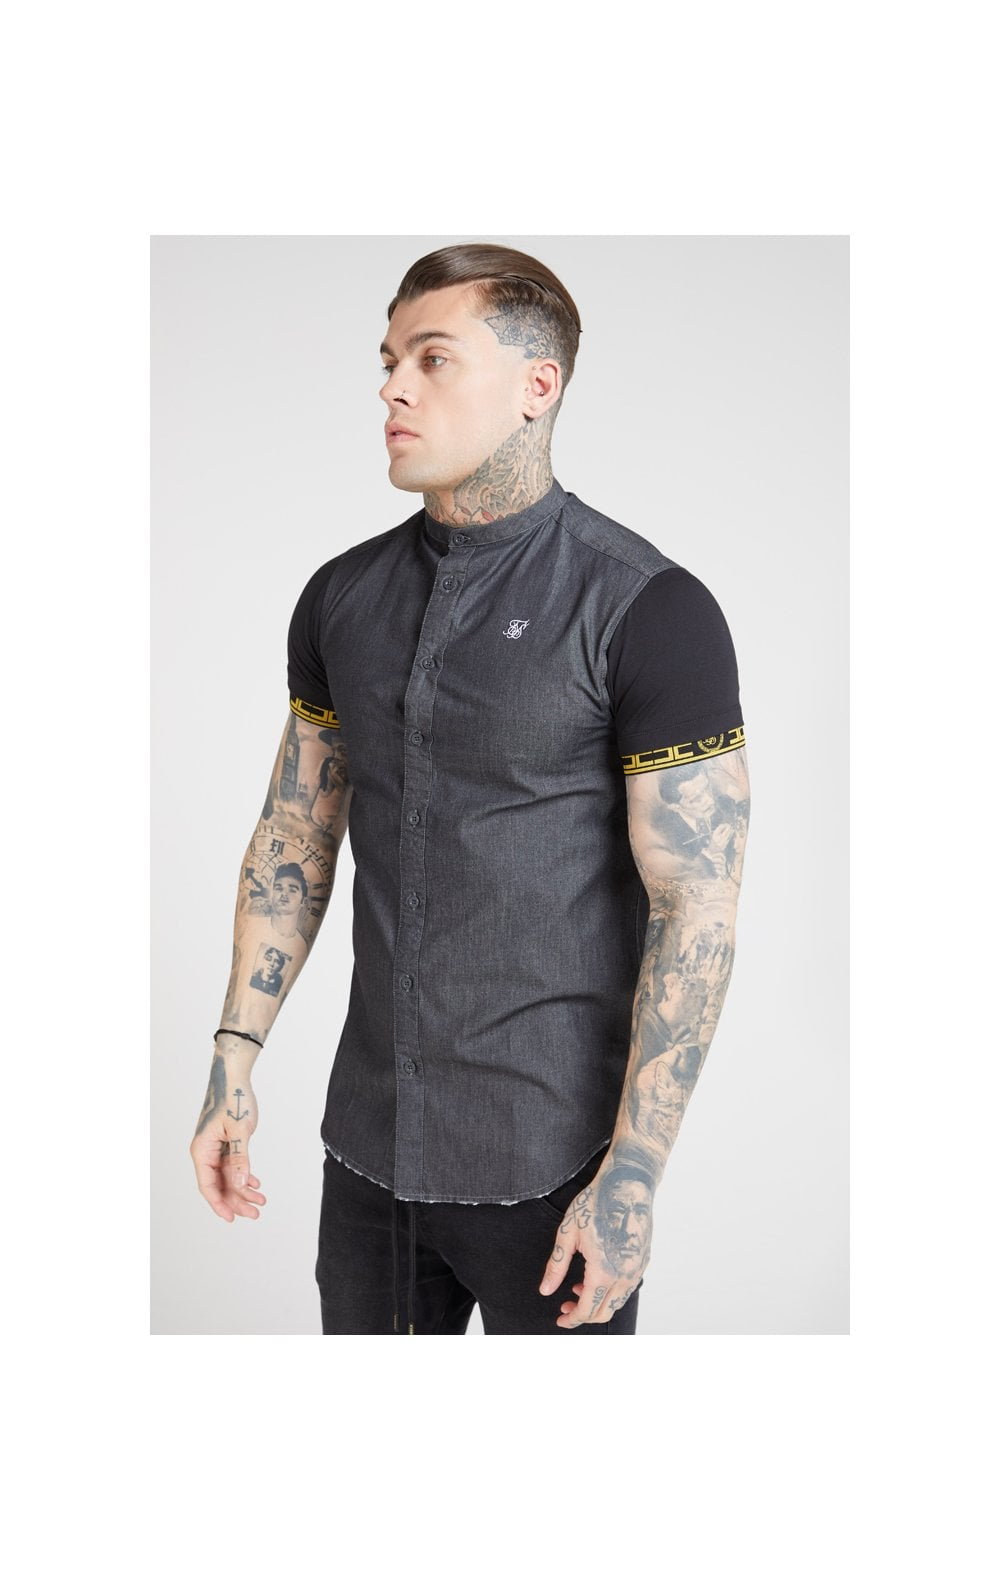 SikSilk S/S Denim Shirt – Black (1)